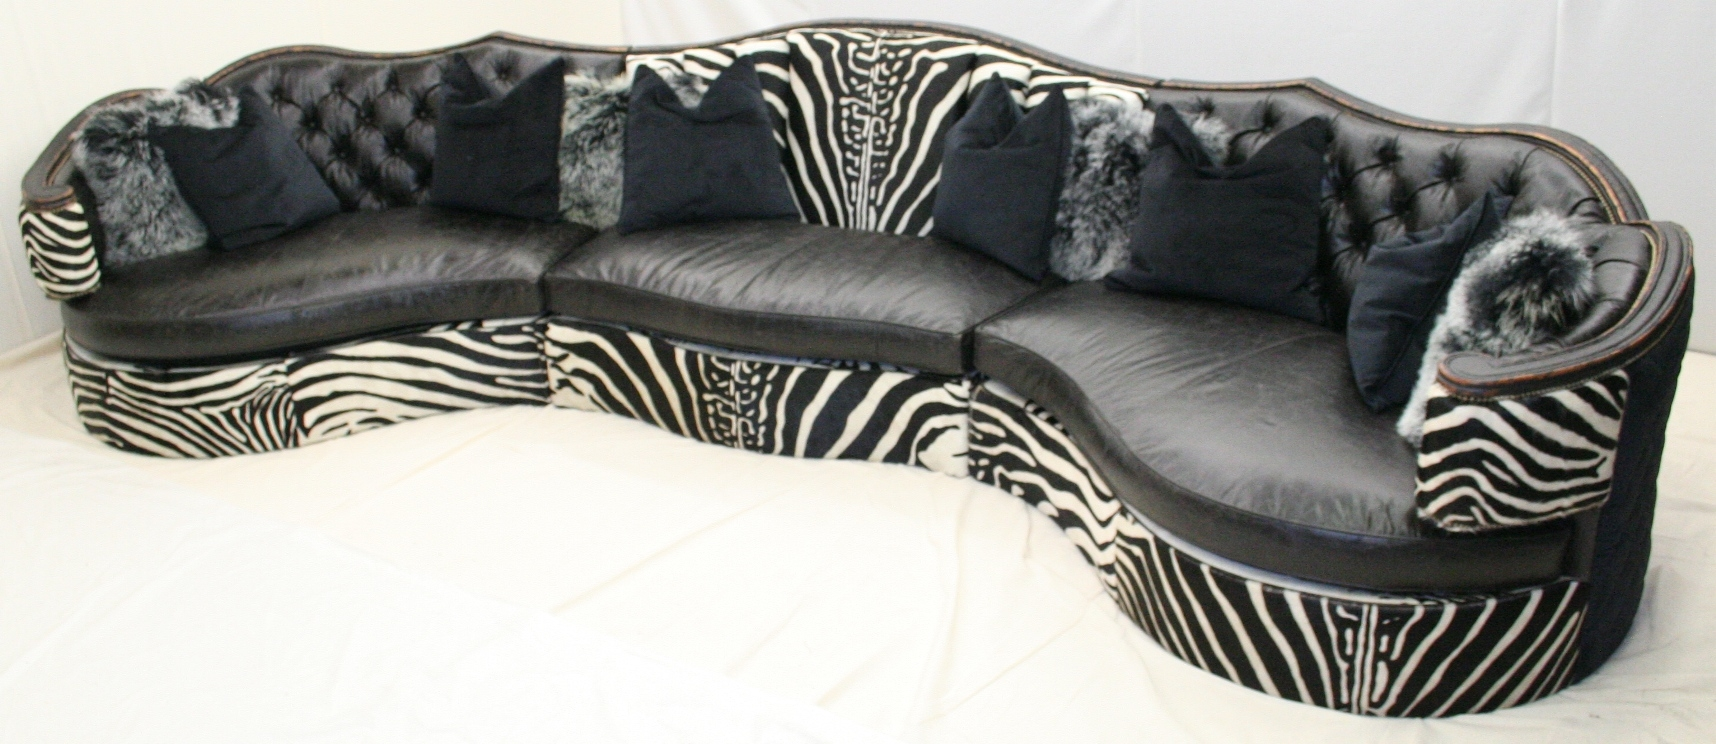 Dfs 4 Seater Sofa Images Childrens Leather